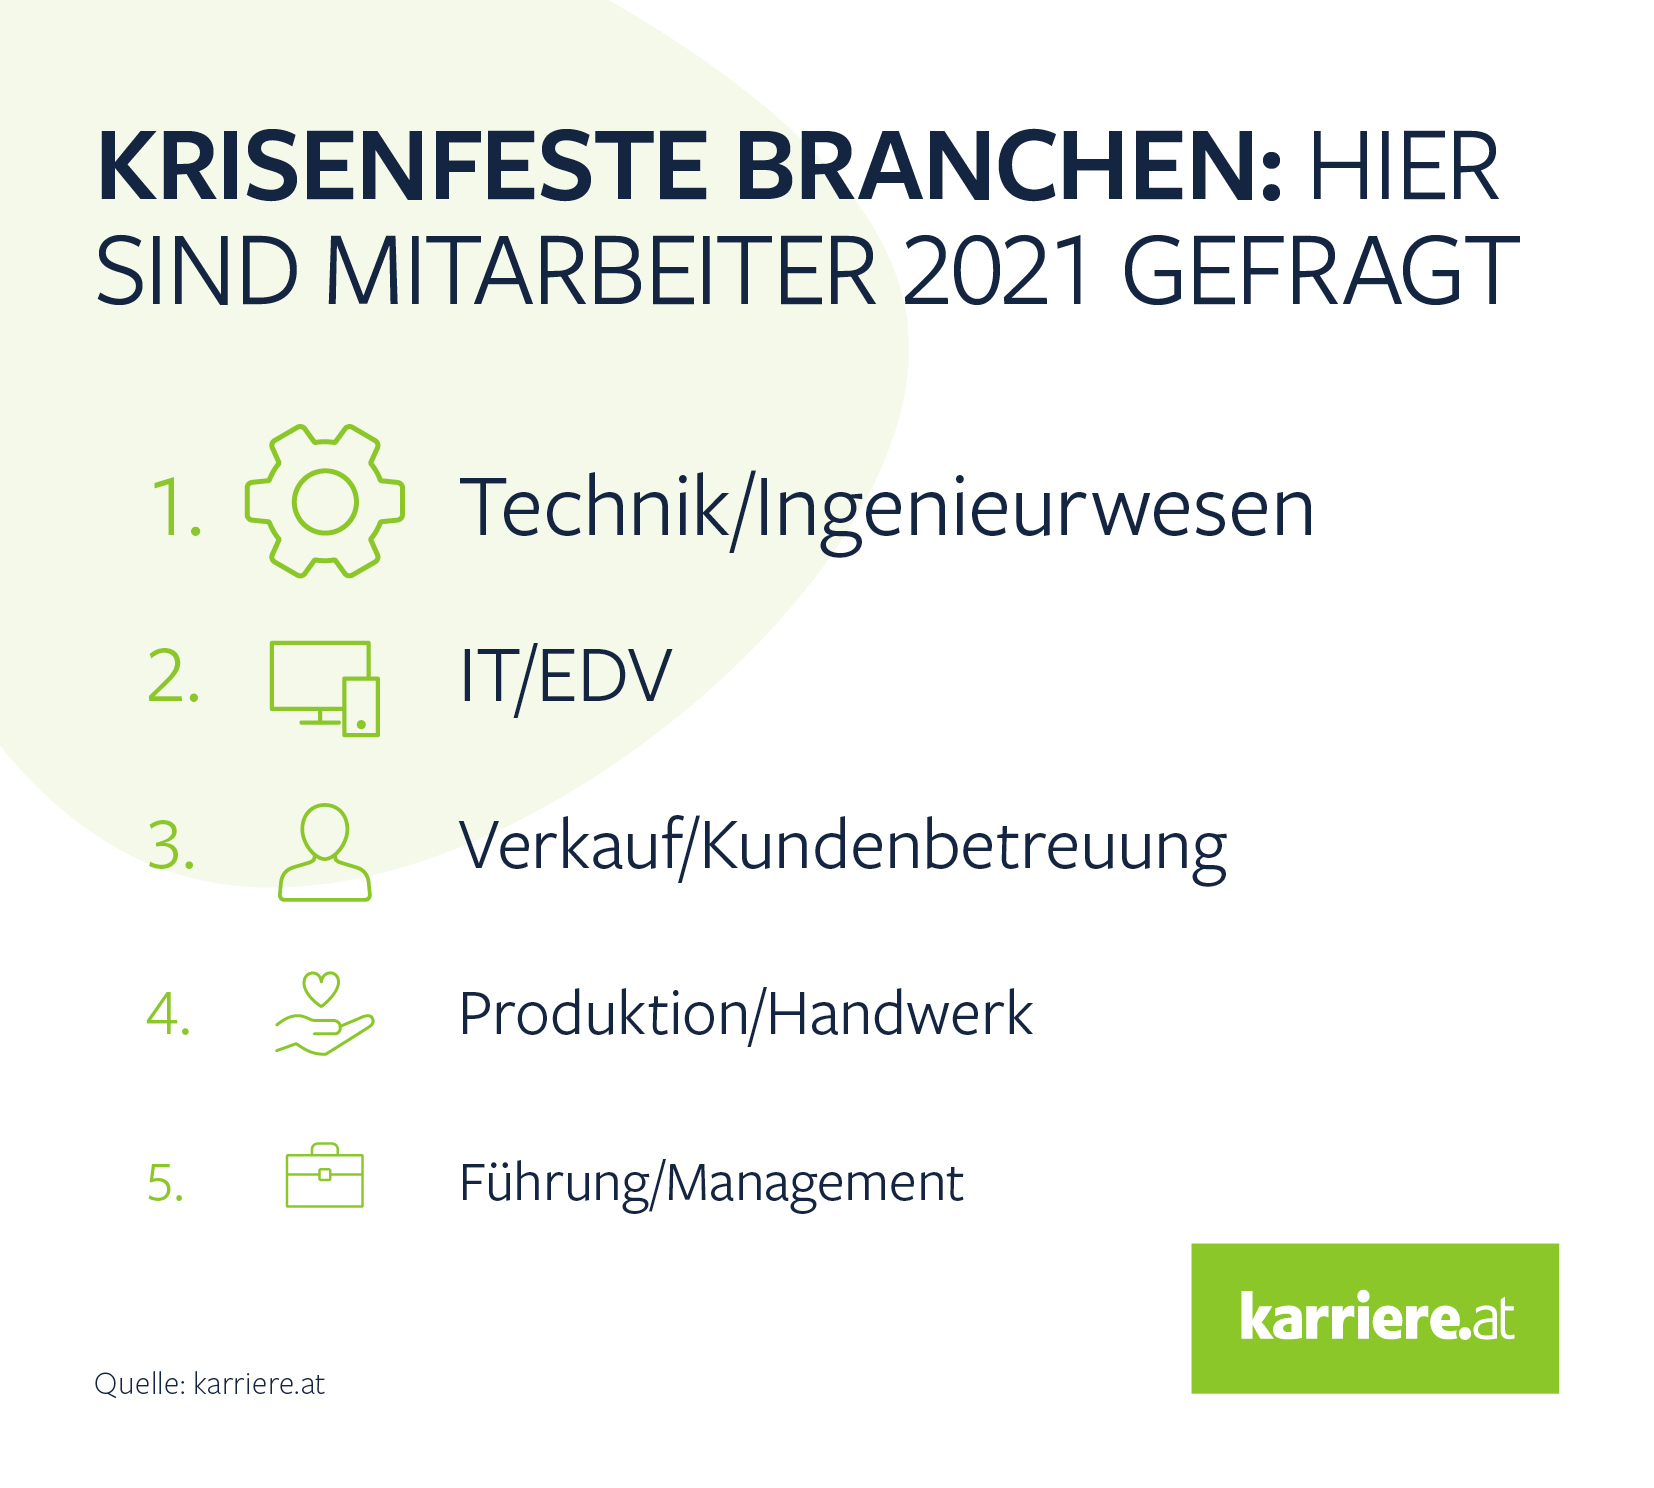 Branchen Ranking krisenfeste Jobs 2021 karriere at